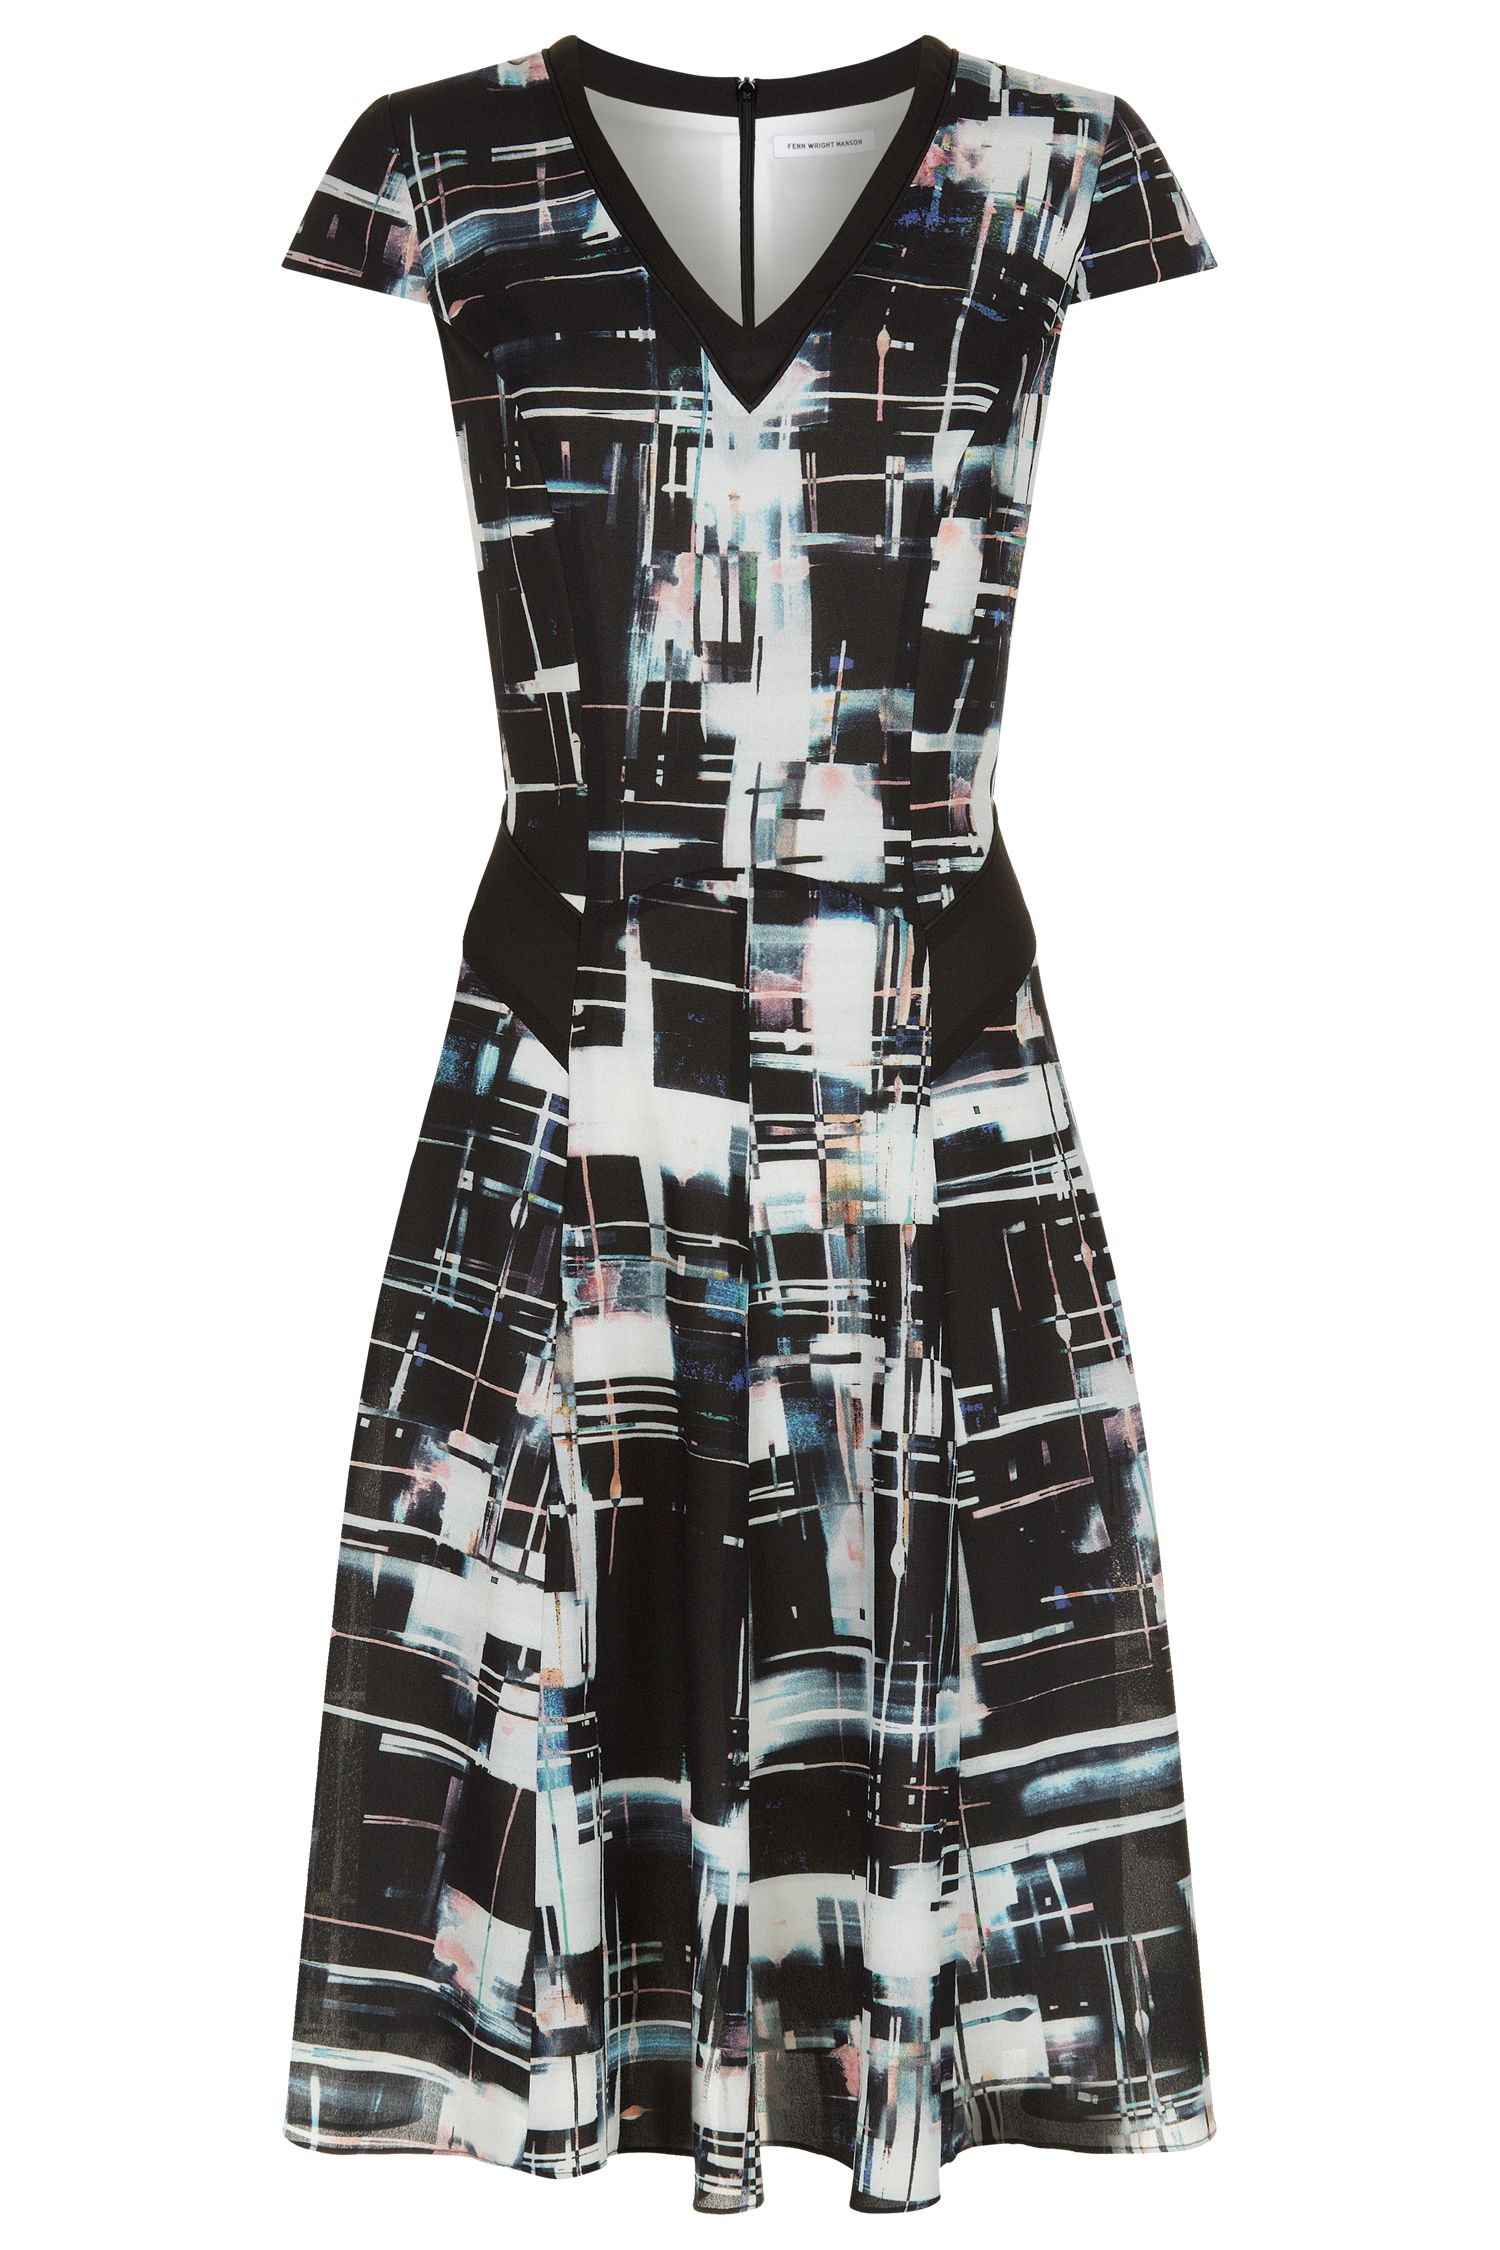 Fenn Wright Manson Libra Dress, Multi-Bright